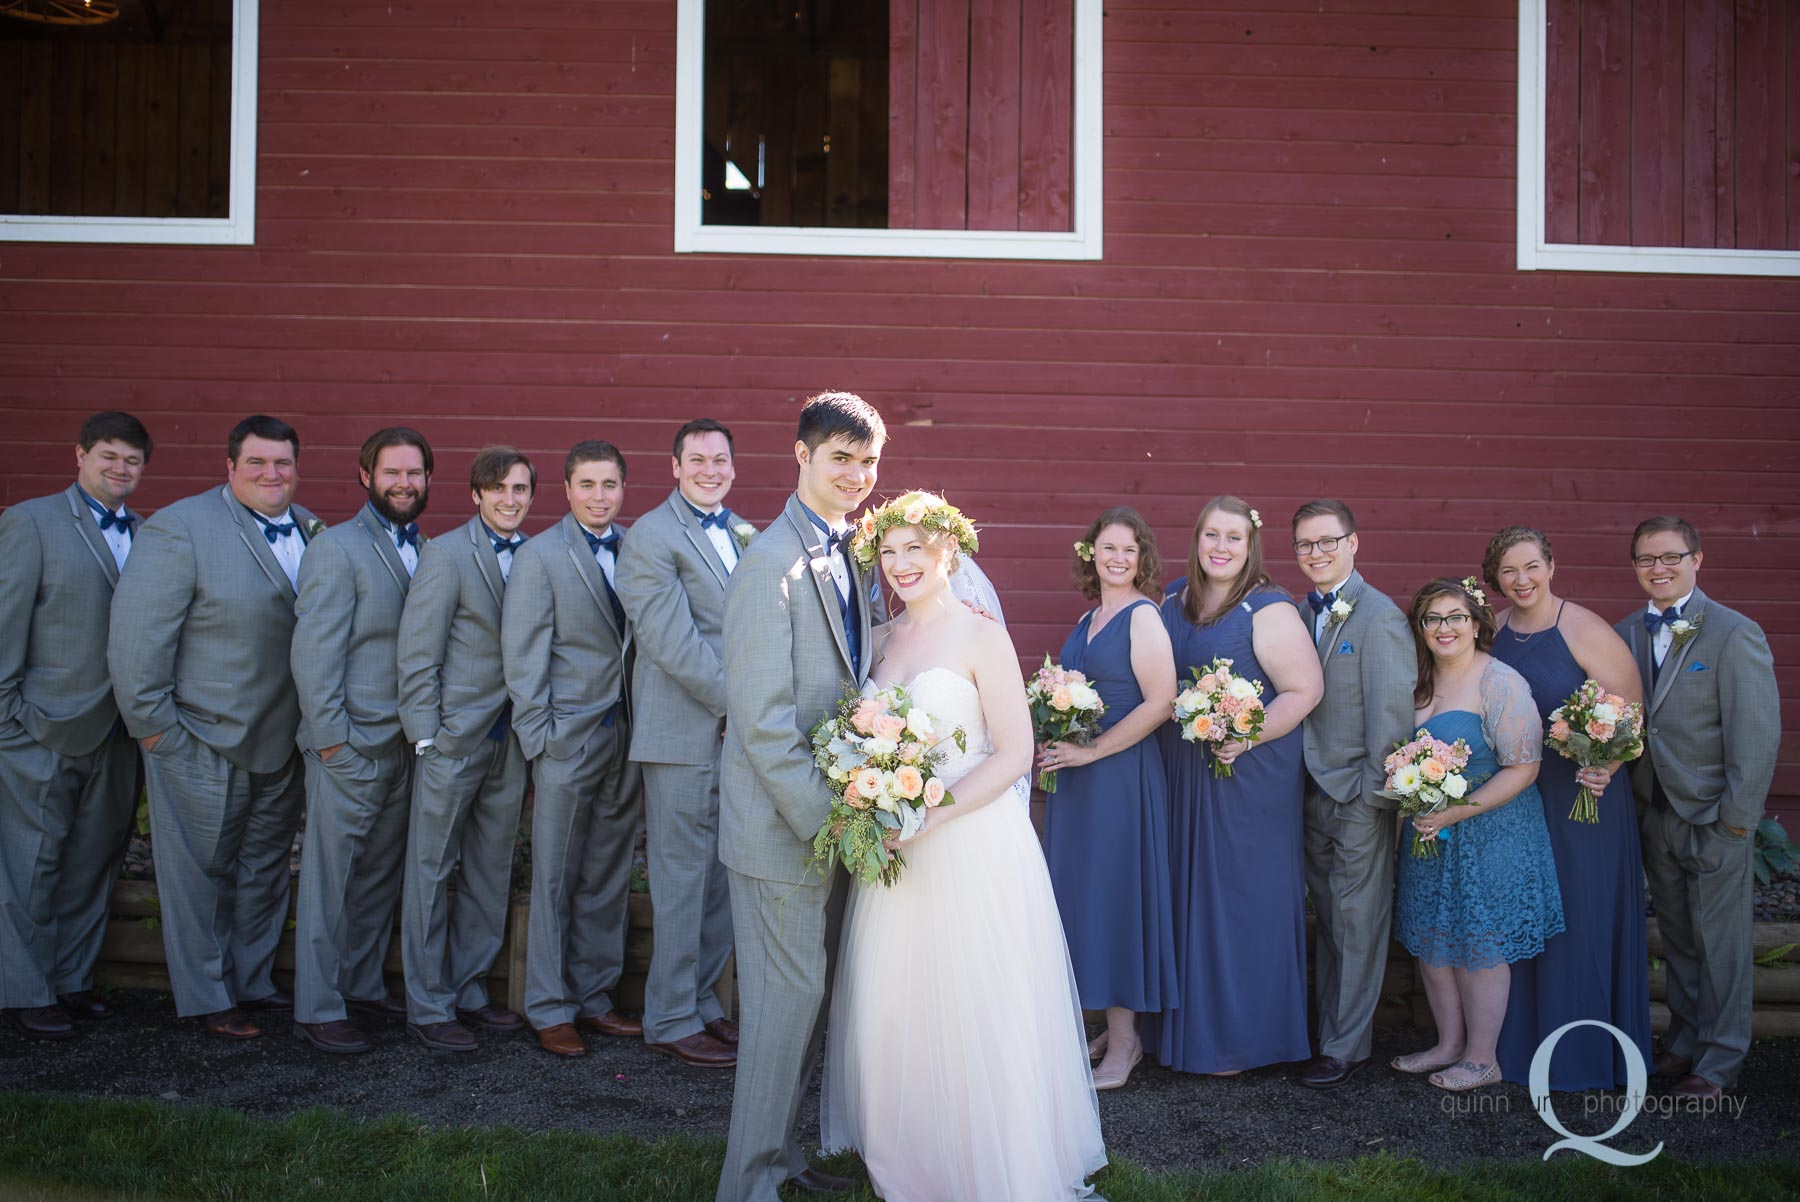 Perryhill Farm wedding party in front of barn